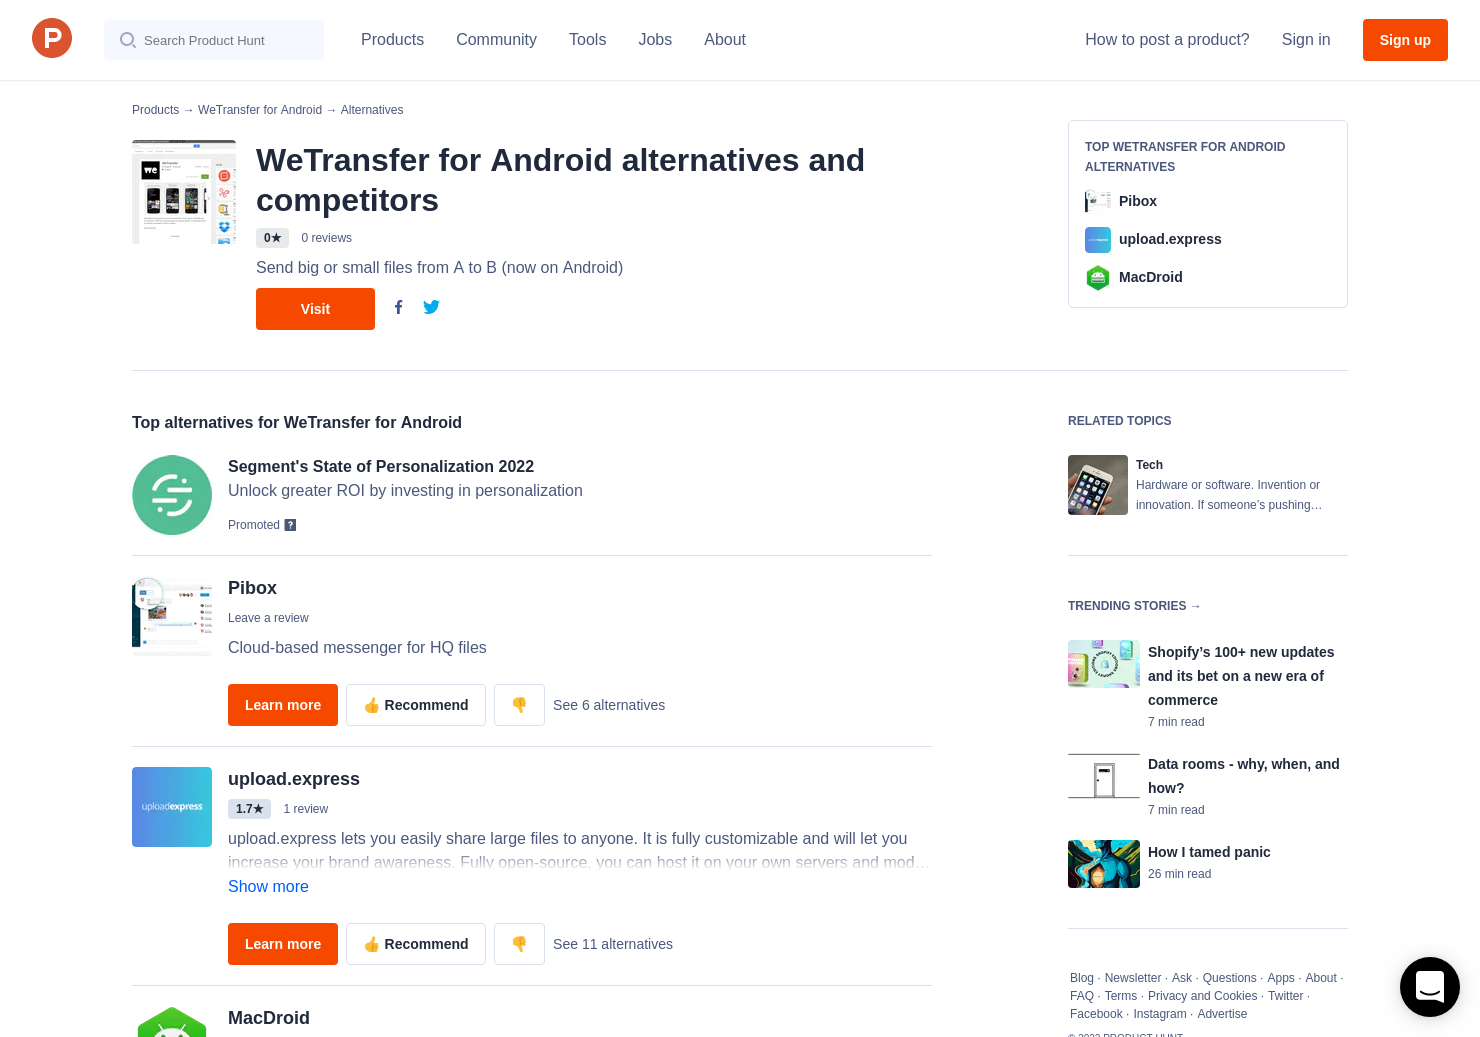 3 Alternatives to WeTransfer for Android | Product Hunt